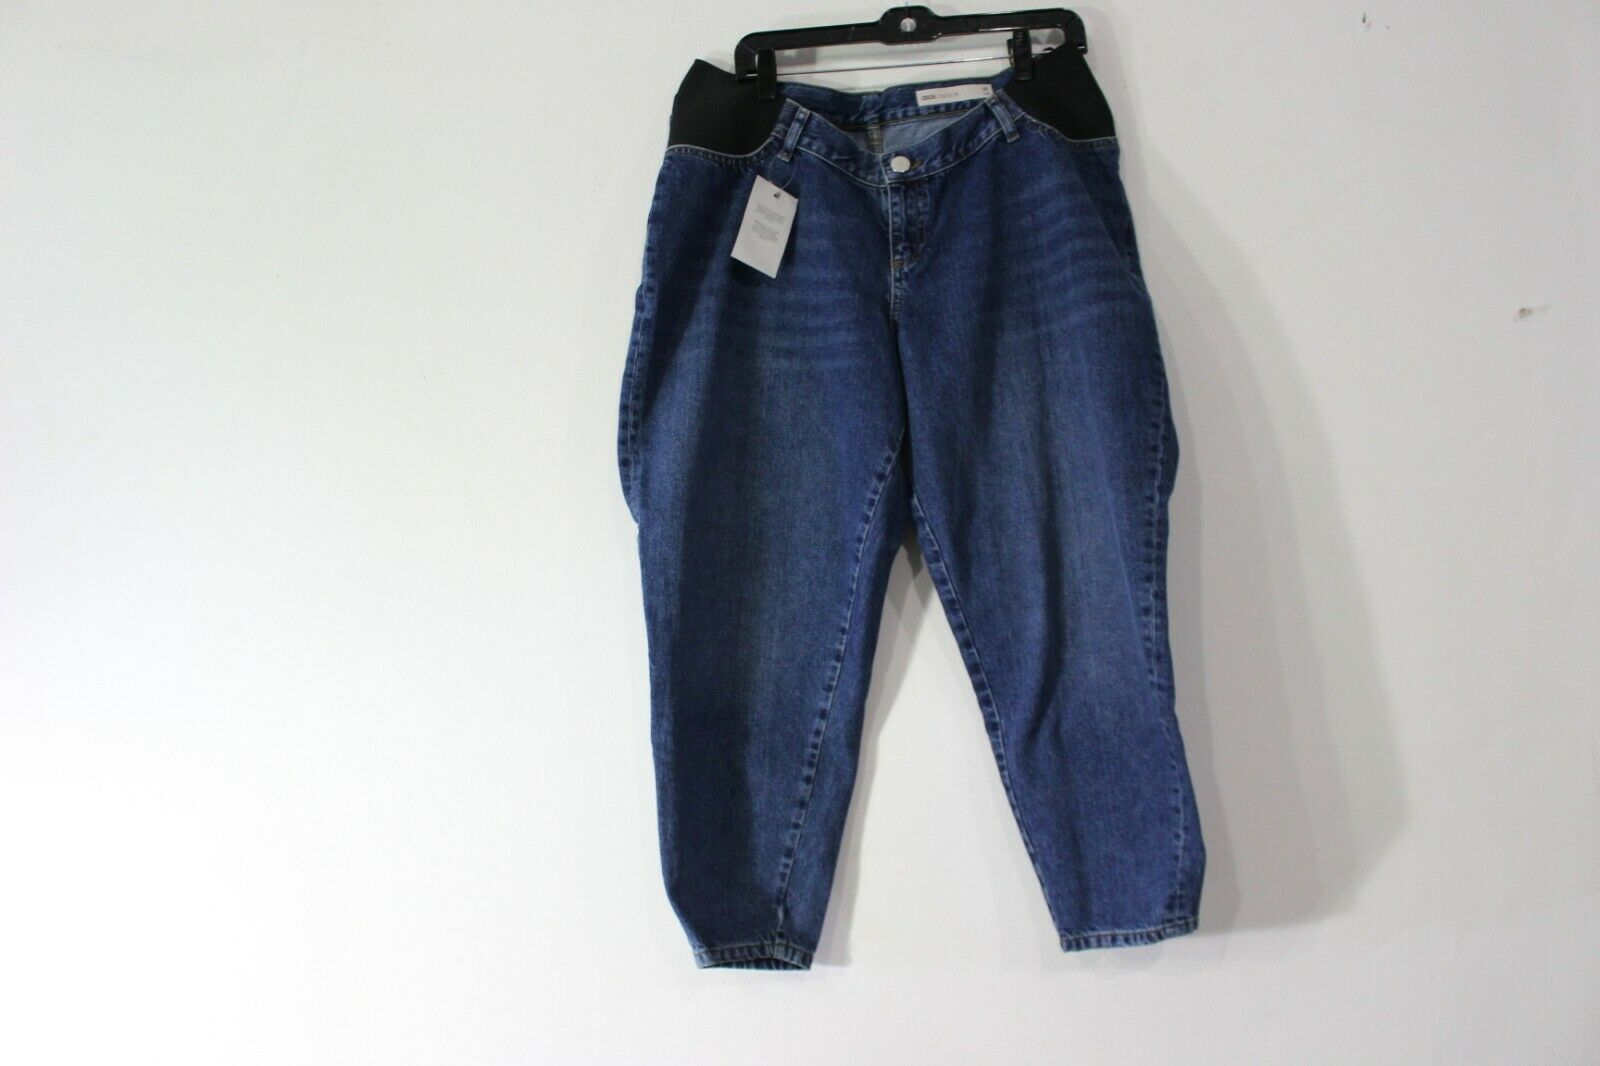 ASOS DESIGN MATERNITY BALLOON LEG BOYFRIEND JEANS SIZE 10 DARK WASH blueE   51.00